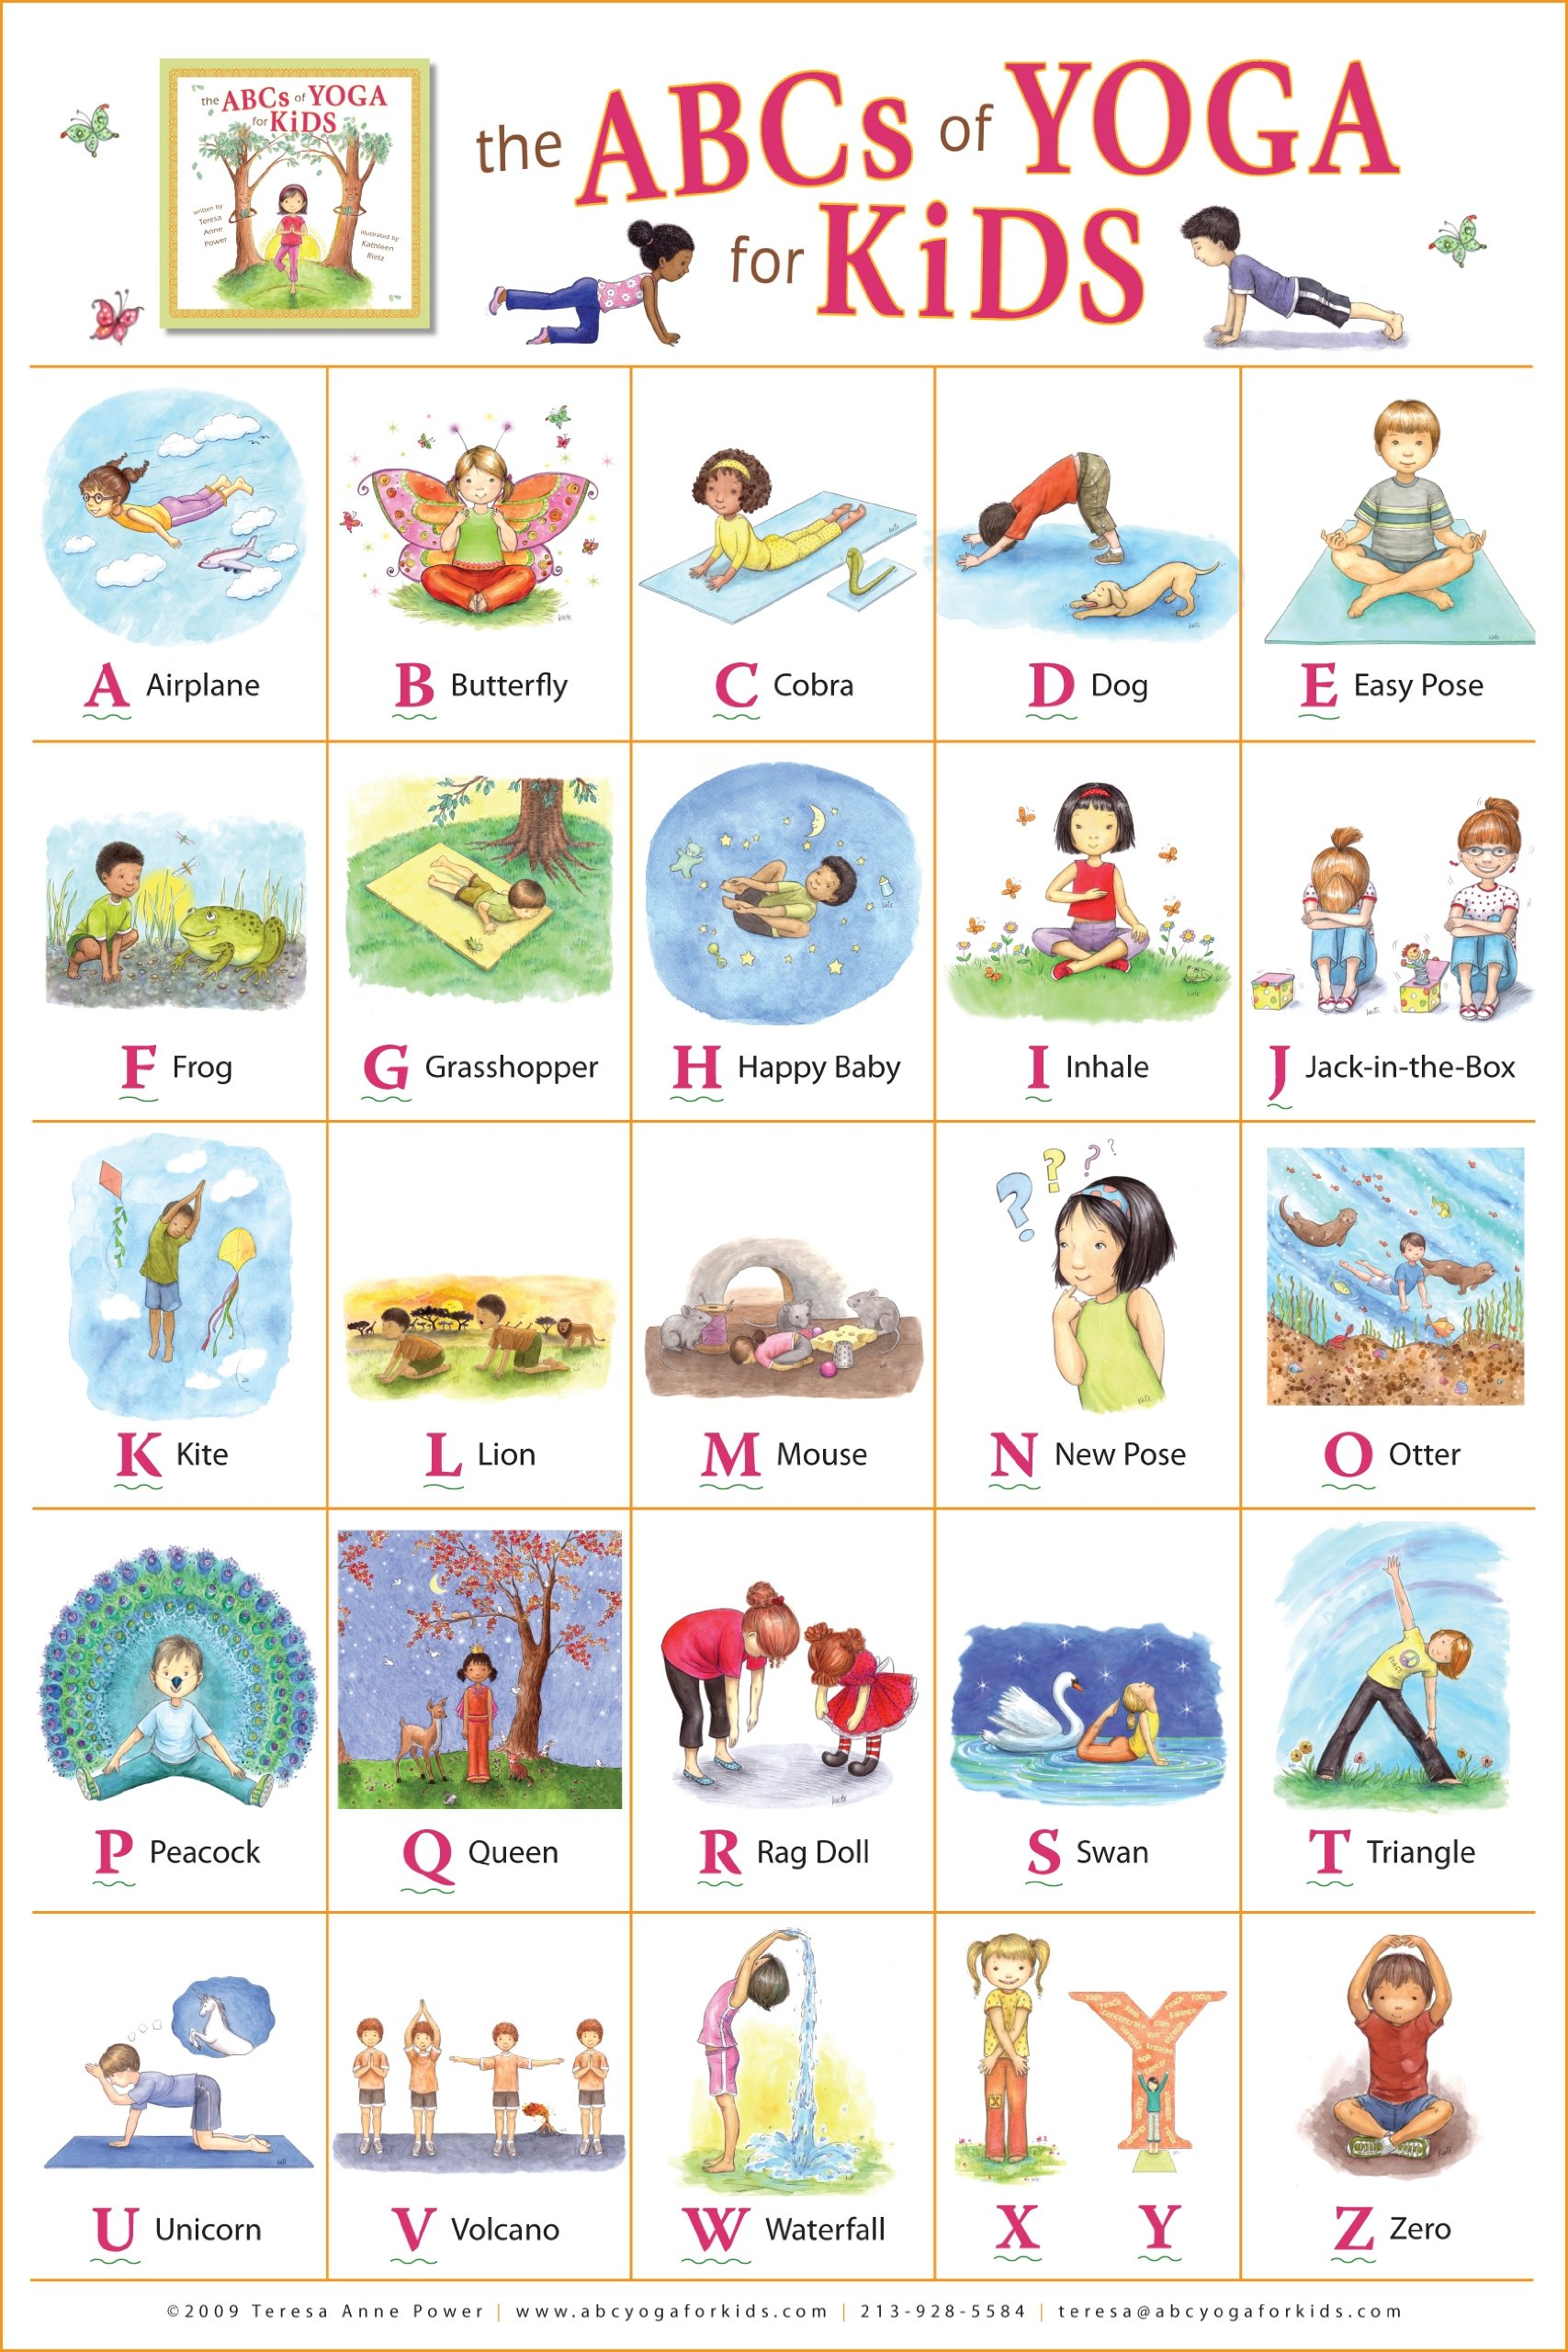 The ABCs Of Yoga For Kids 20 X 30 In Poster